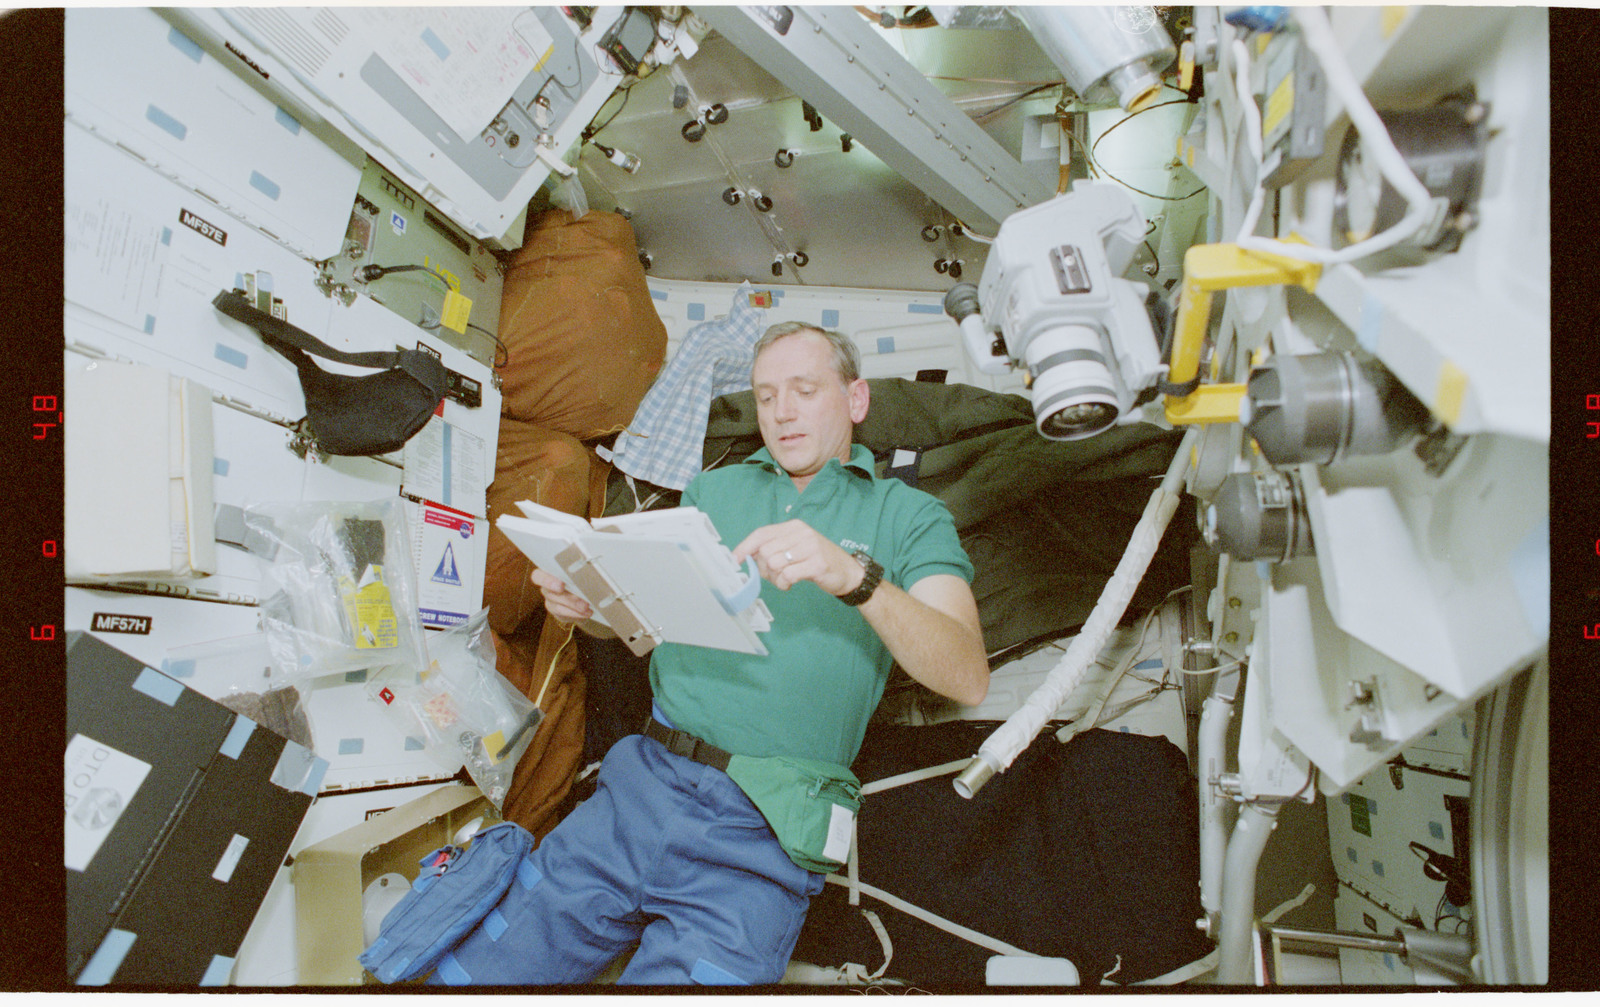 STS079-330-020 - STS-079 - STS-79 crew activities on the middeck